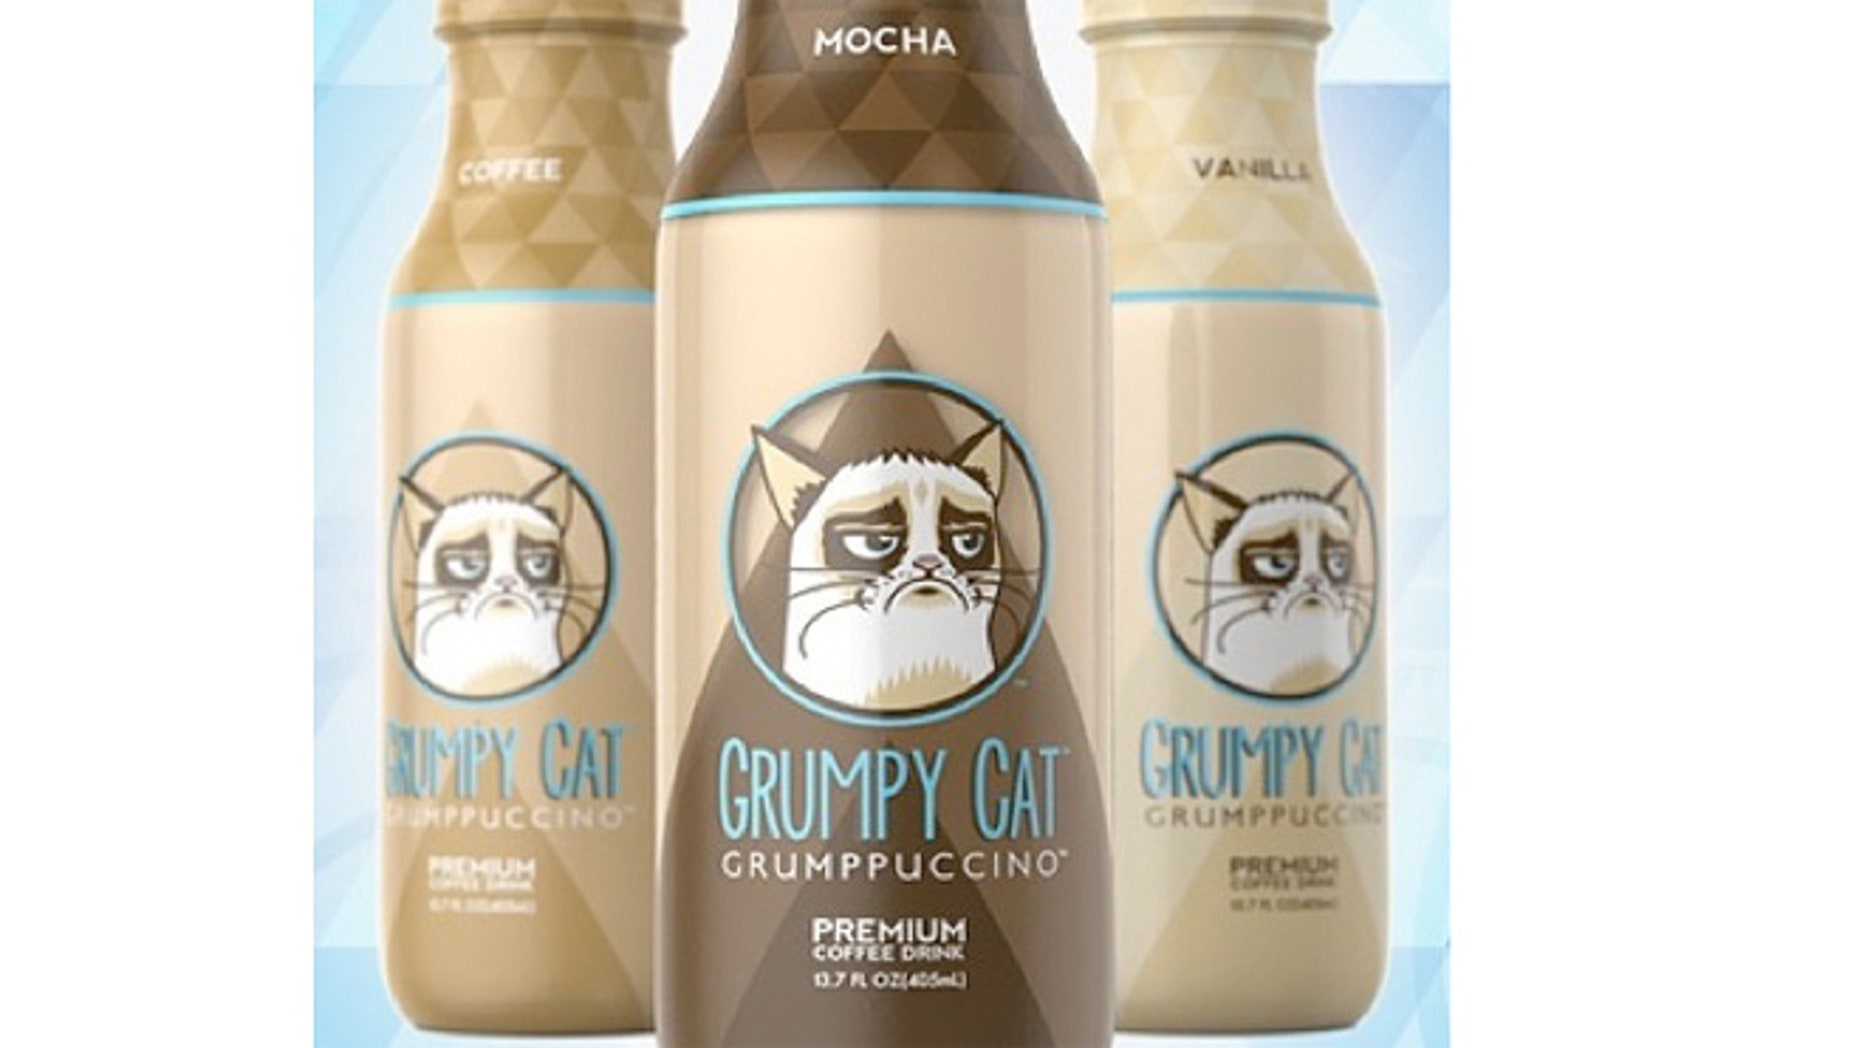 The cat named Tarder Sauce, also known as Grumpy Cat, is the inspiration for a new iced coffee drink.